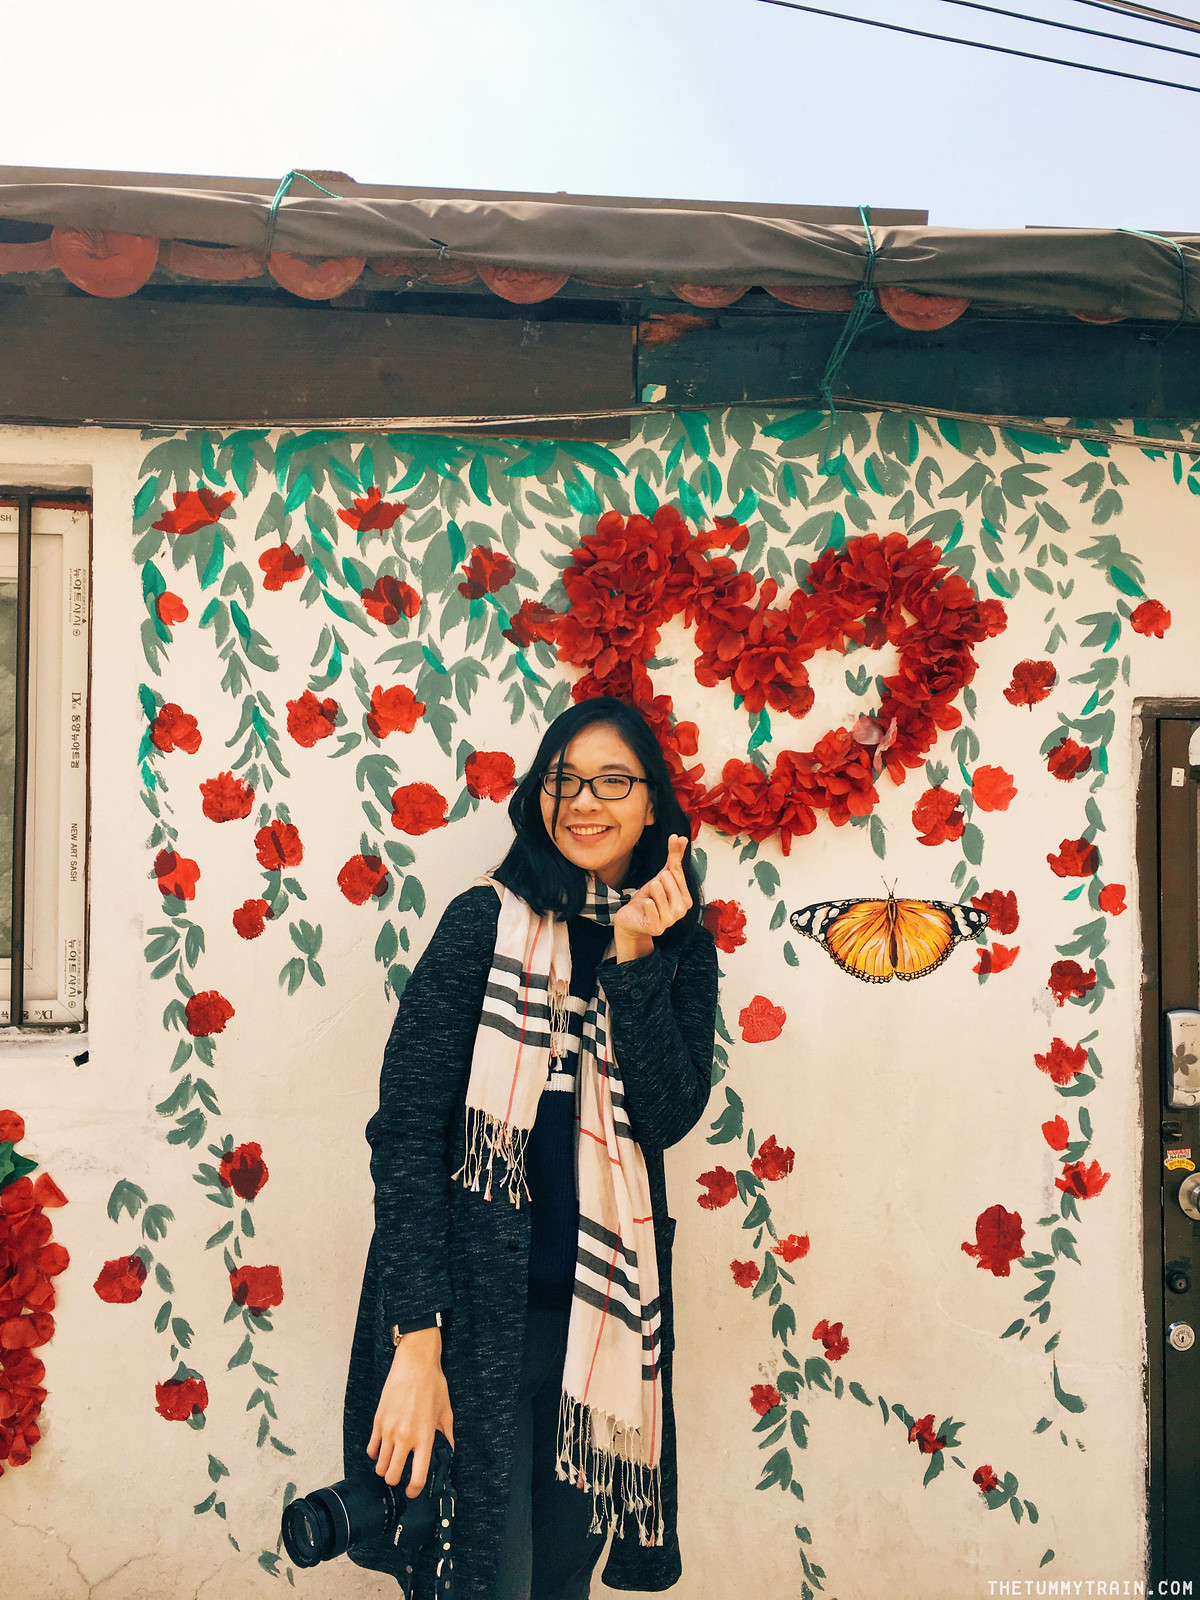 32782209504 c61a46cfe2 h - Seoul-ful Spring 2016: A mini exploration of Ihwa Mural Village